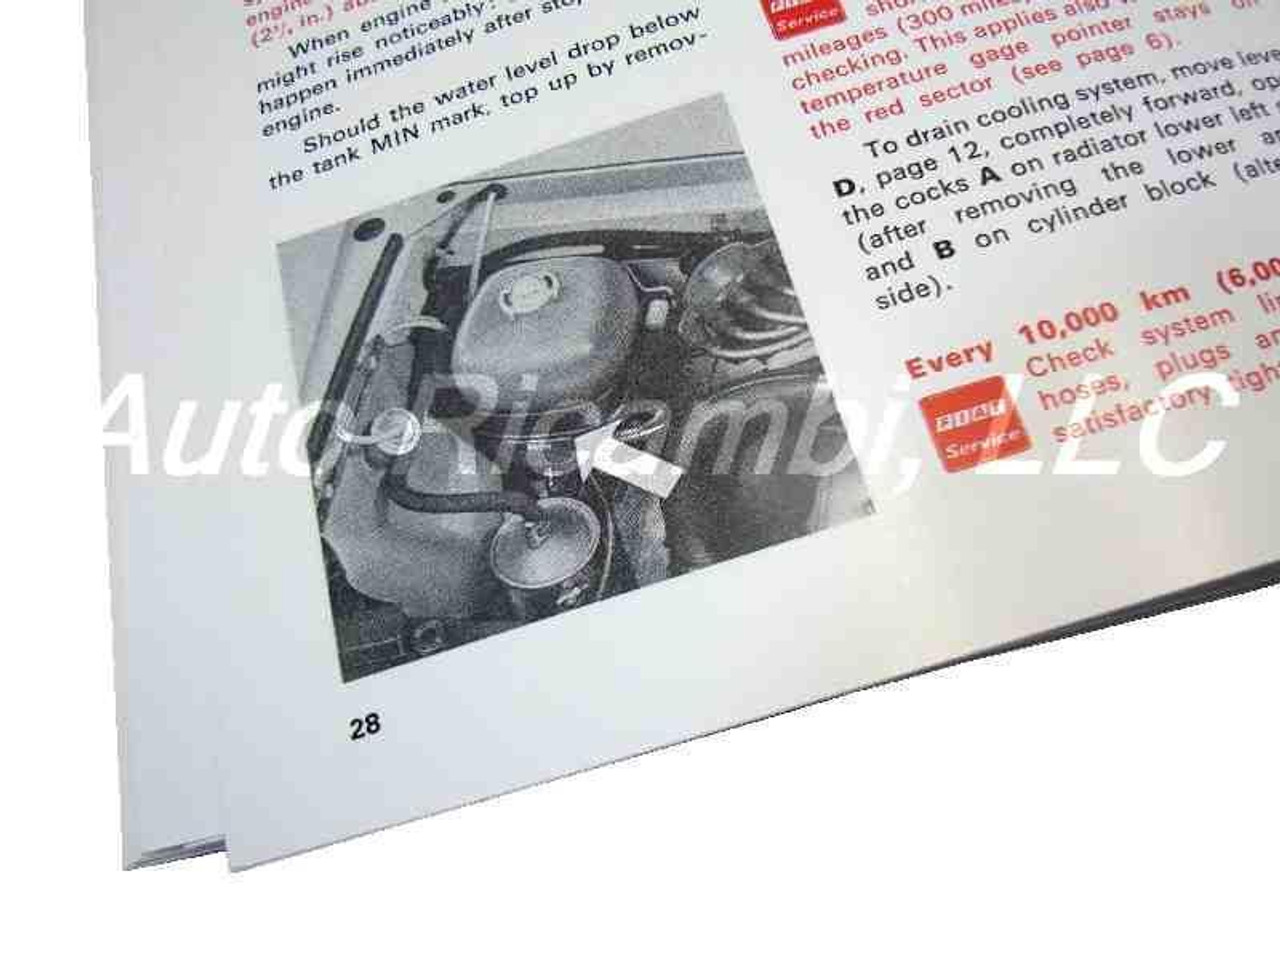 Owners Manual - 1972